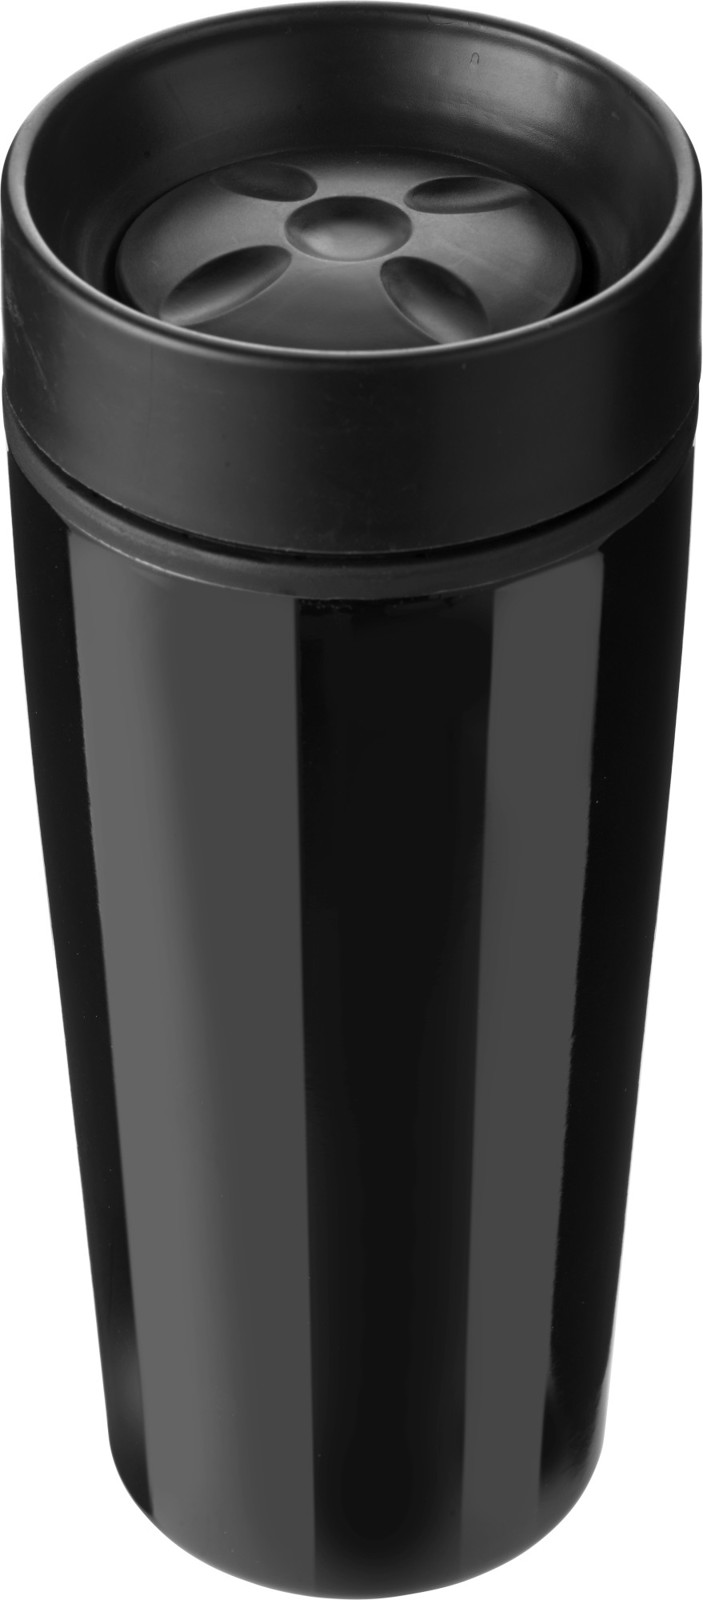 Stainless steel double walled travel mug - Black